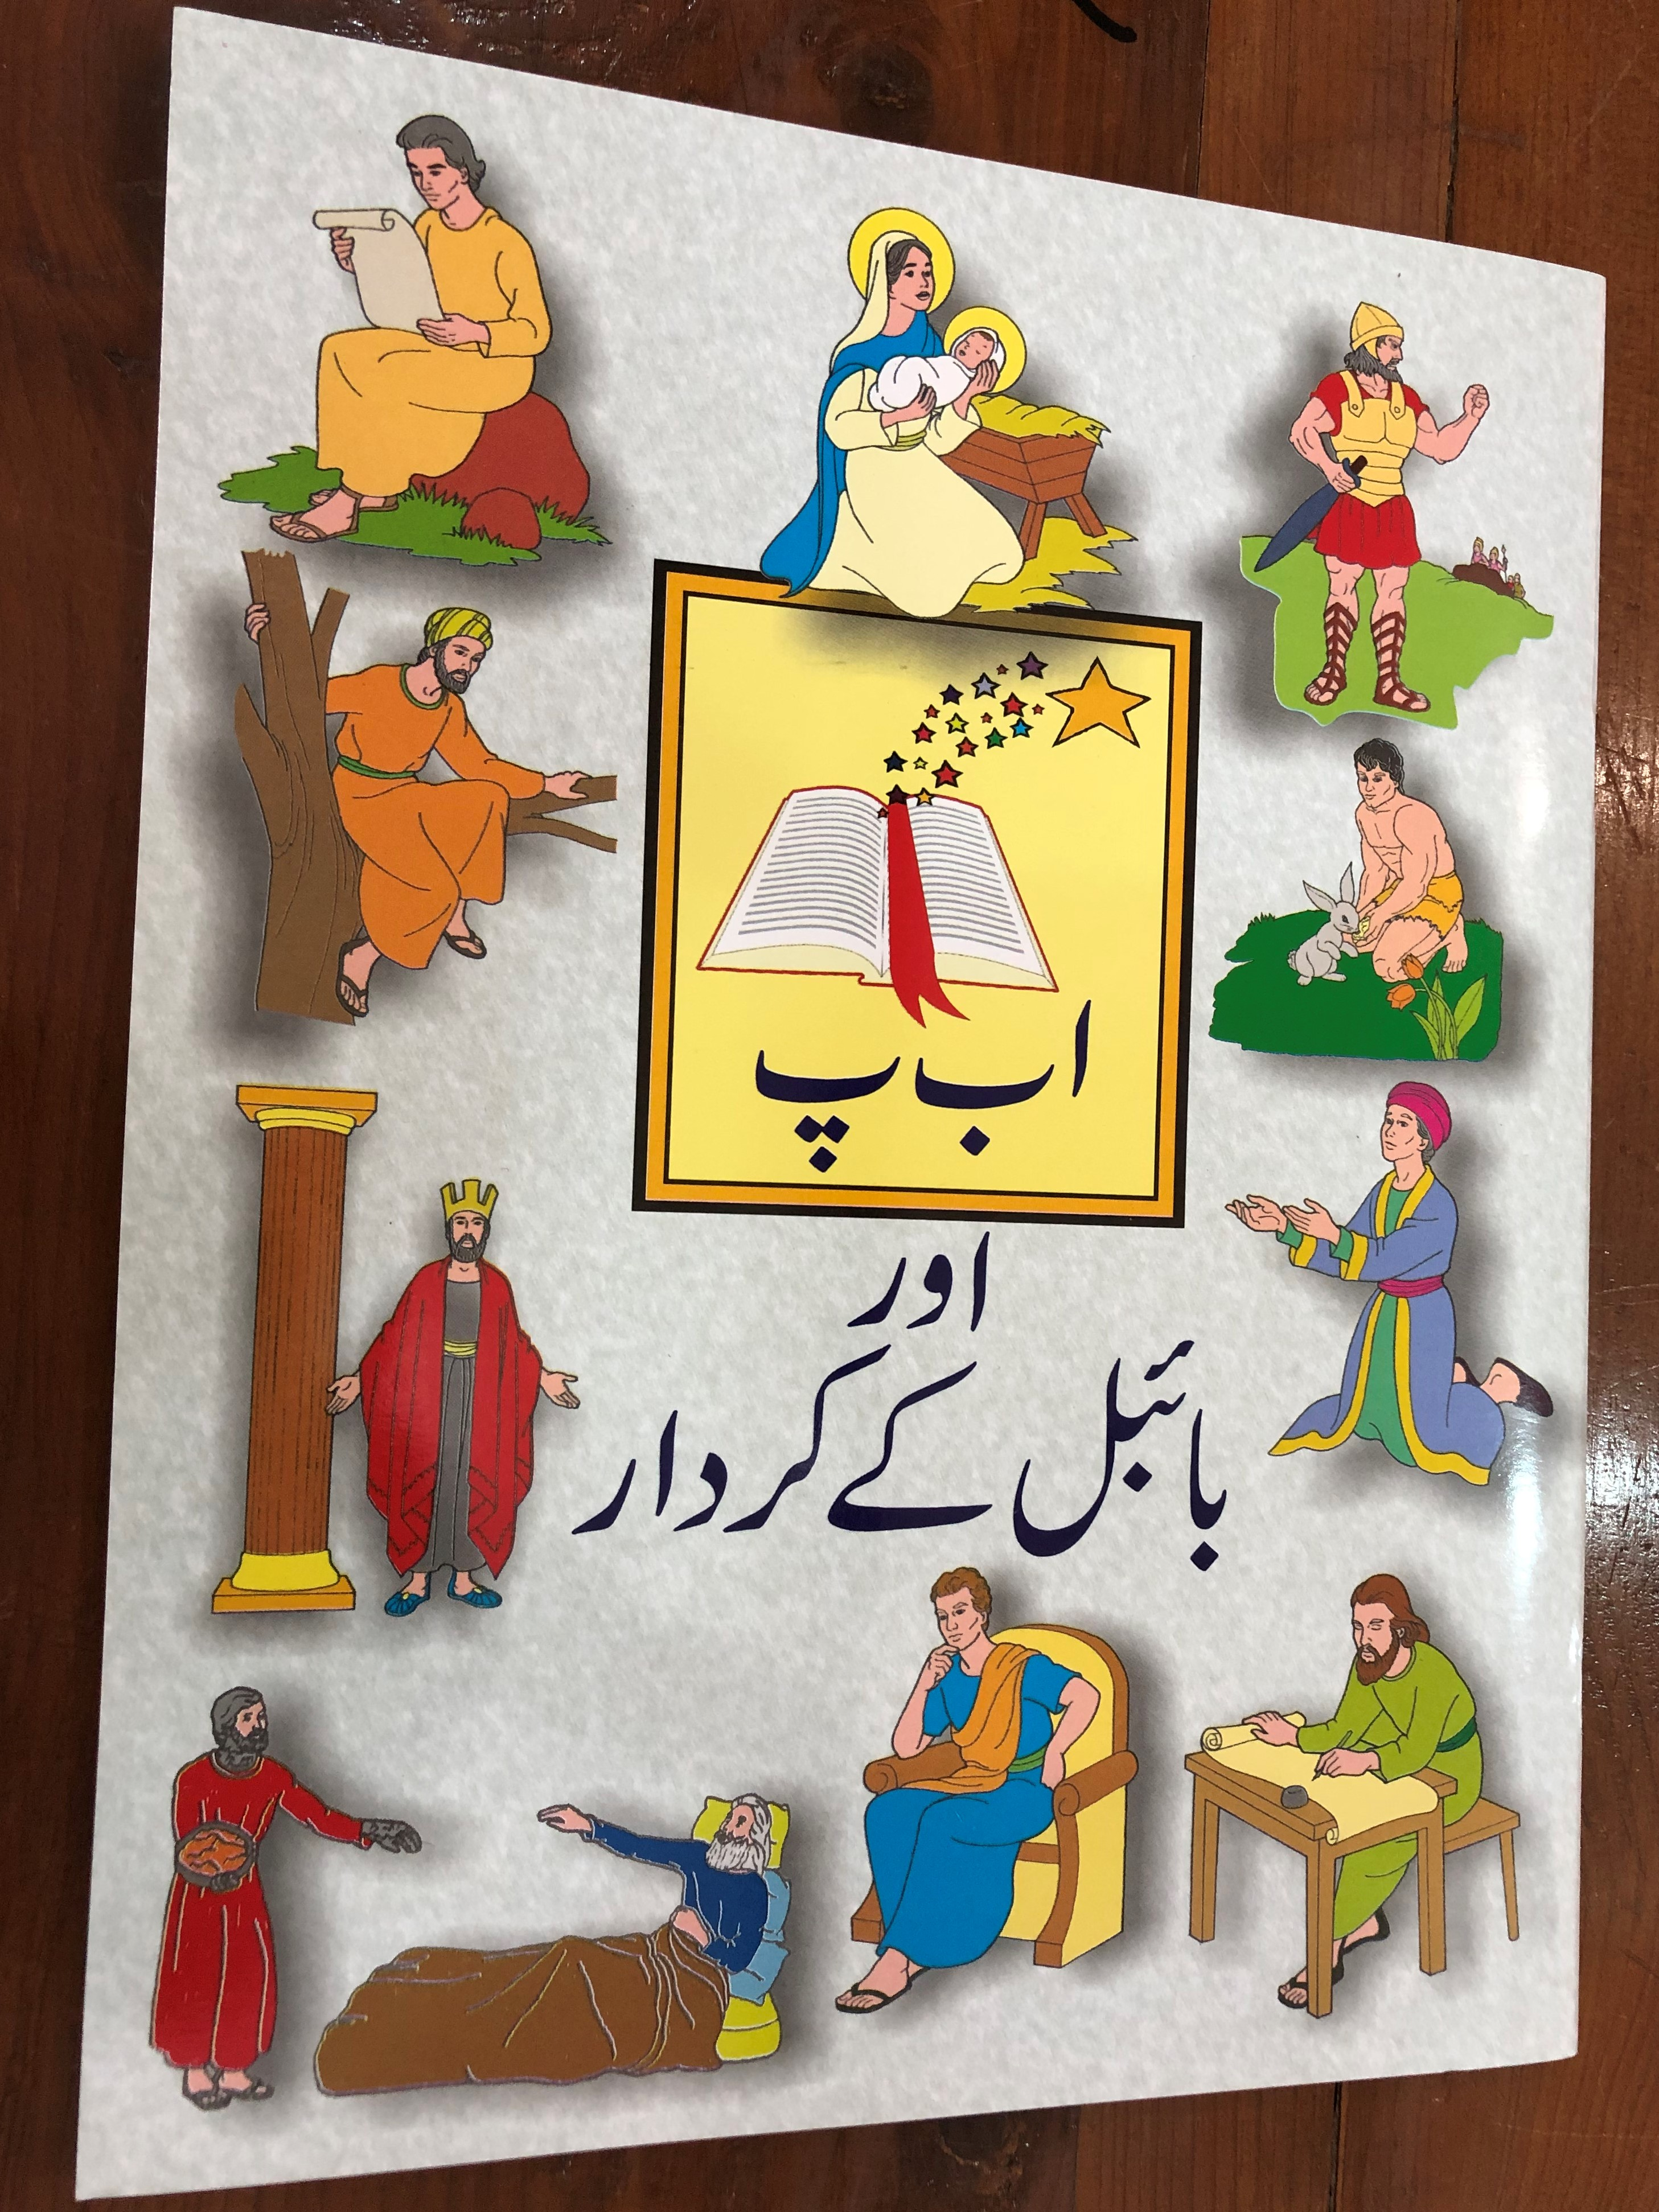 -abc-of-the-bible-urdu-language-children-s-coloring-book-paperback-learn-the-urdu-letters-with-the-bible-1-.jpg